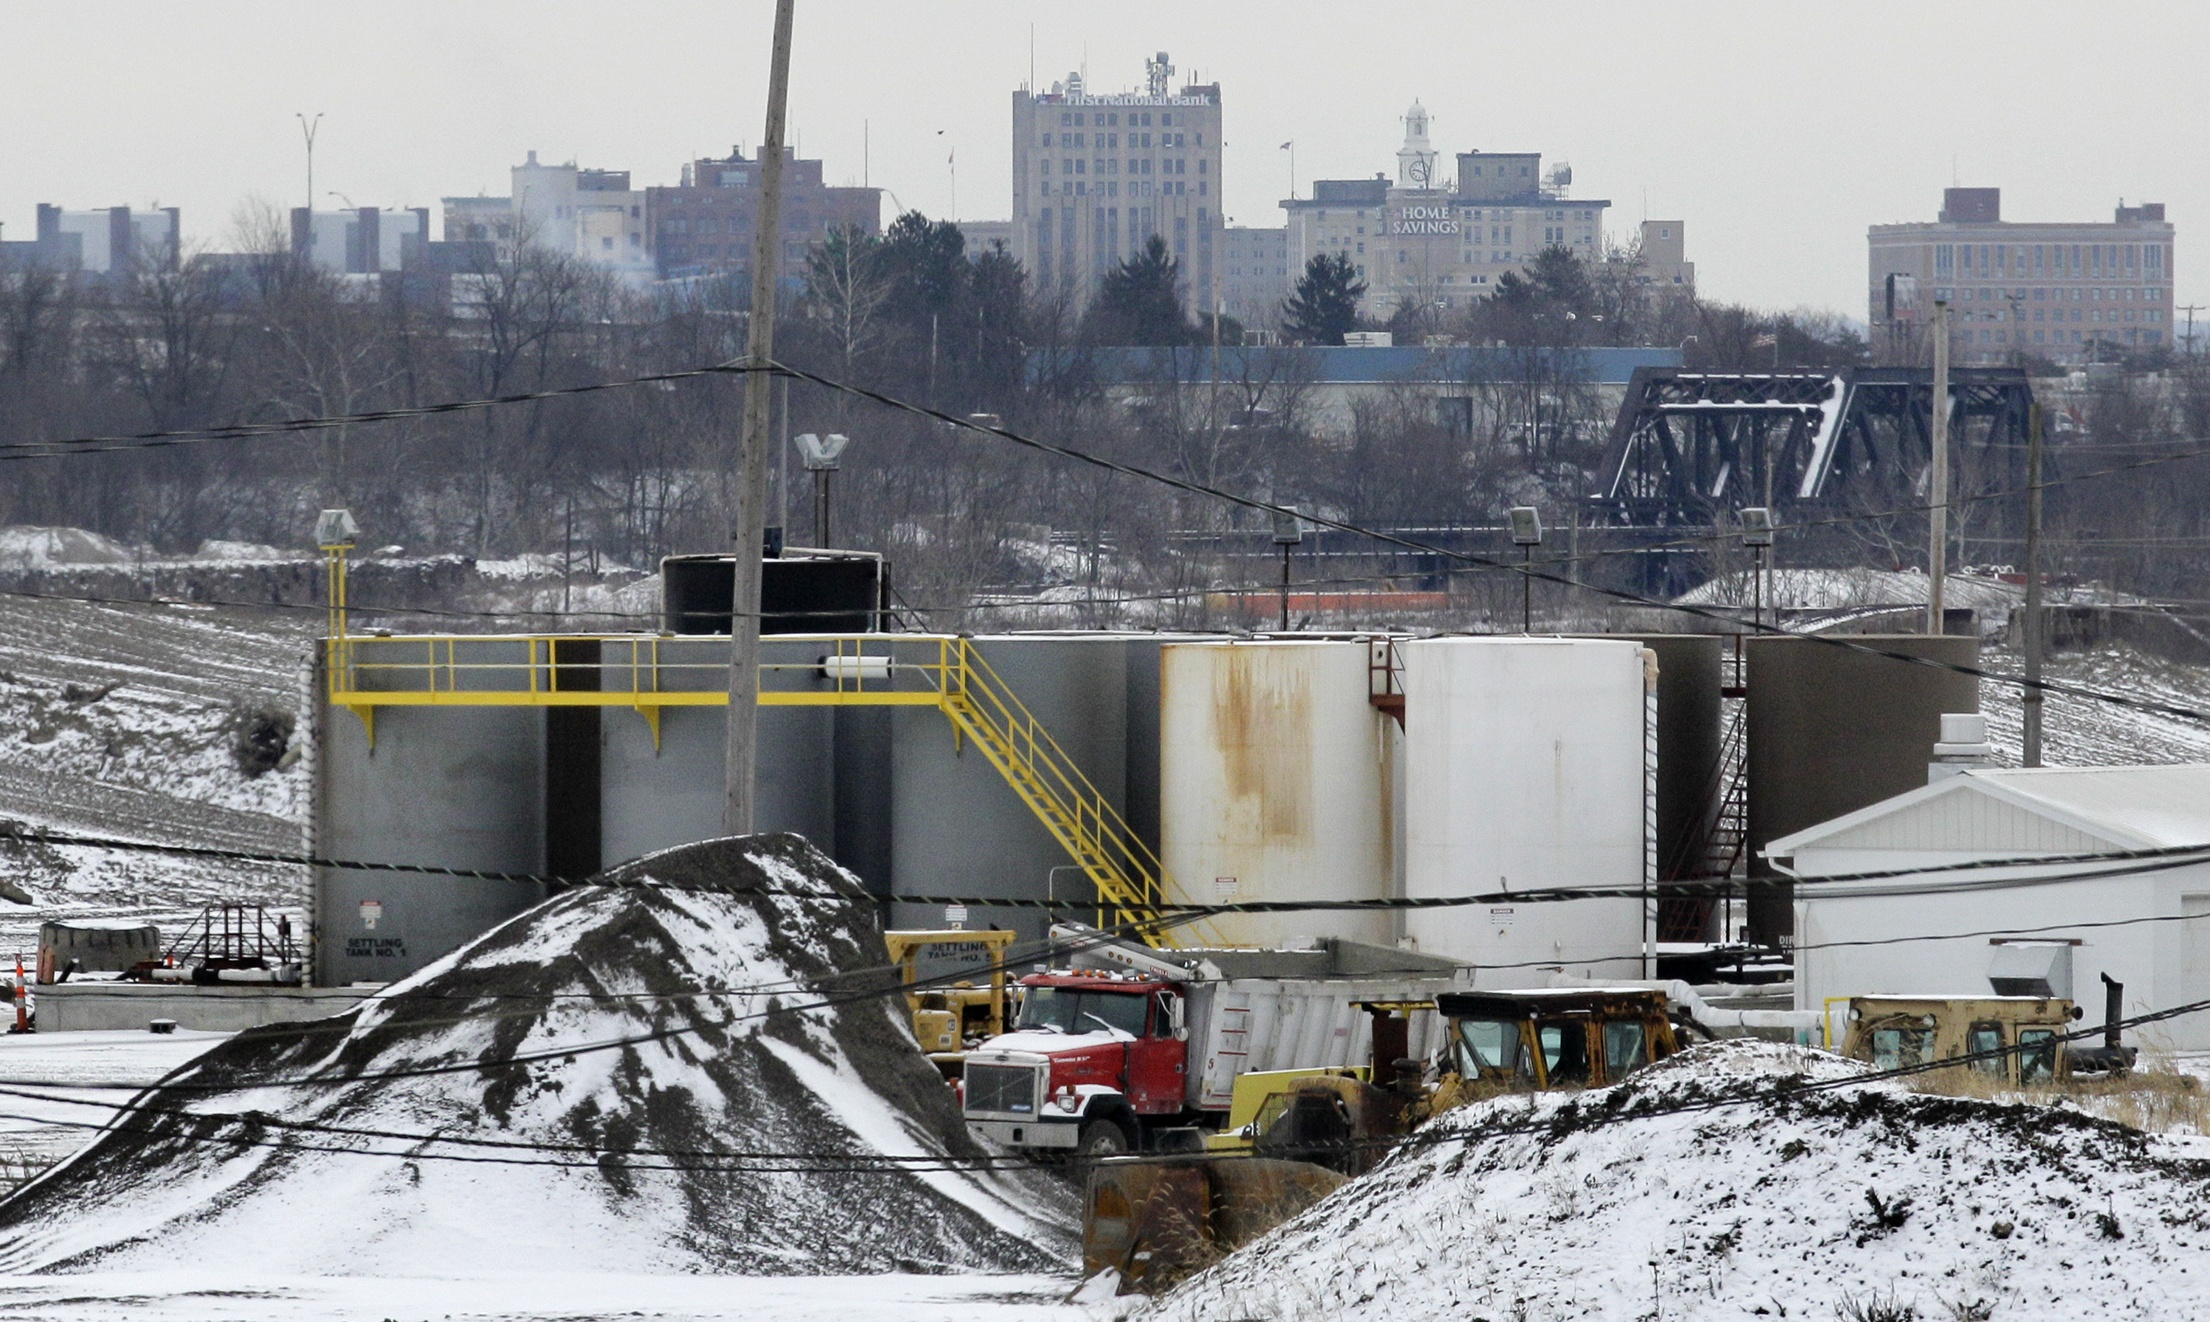 2011apinjectionwellbiz With the skyline of Youngstown, Ohio in the distance, a brine injection well owned by Northstar Disposal Services LLC is seen in Youngstown in January 2011.